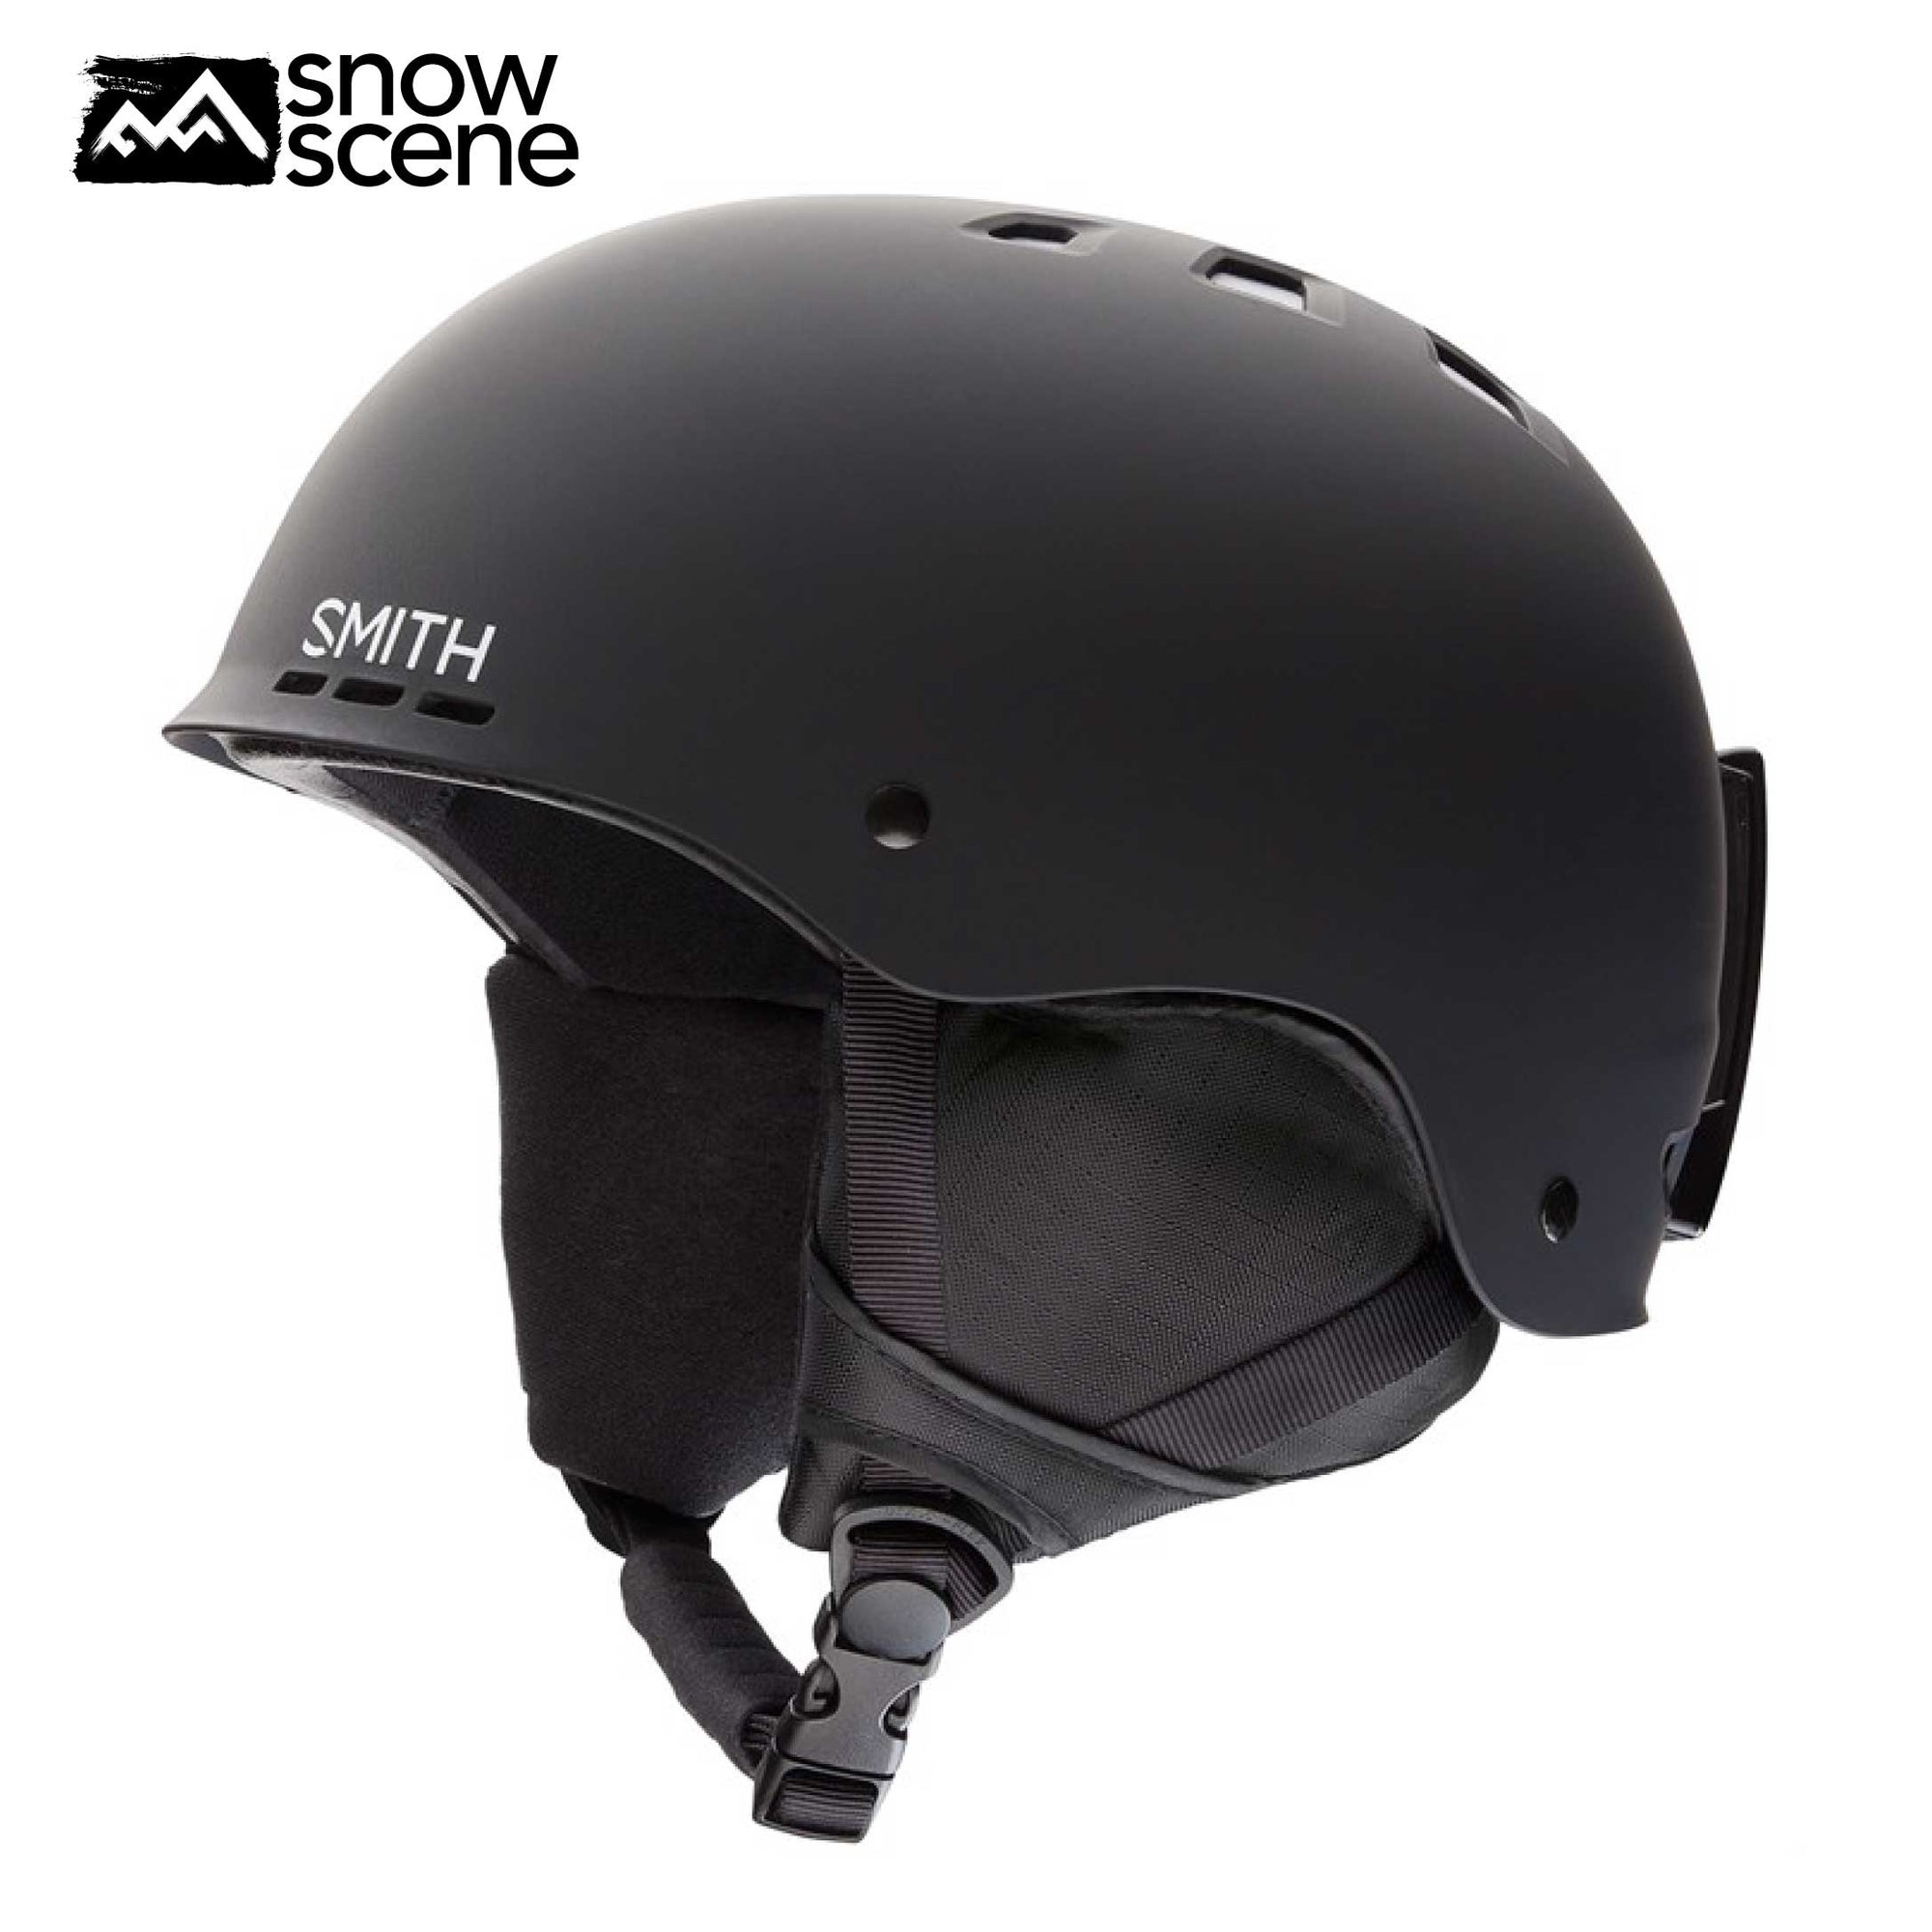 Smith Holt Snow Helmet- Shop Skis and snow gear online nz - snowscene